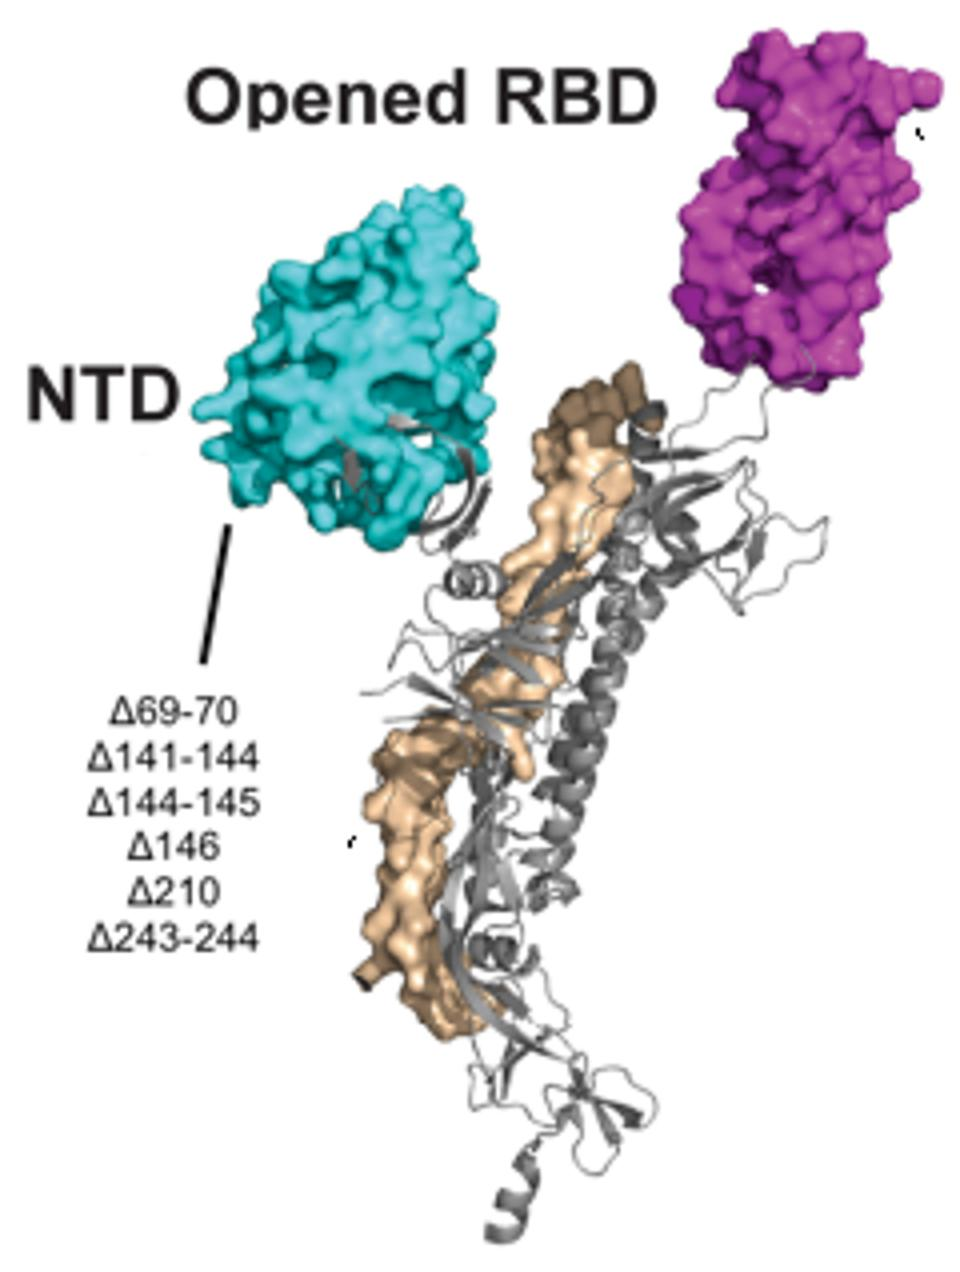 Figure 5. A 3D visualization of the N-terminal domain with notation of the Pittsburgh patient mutations.